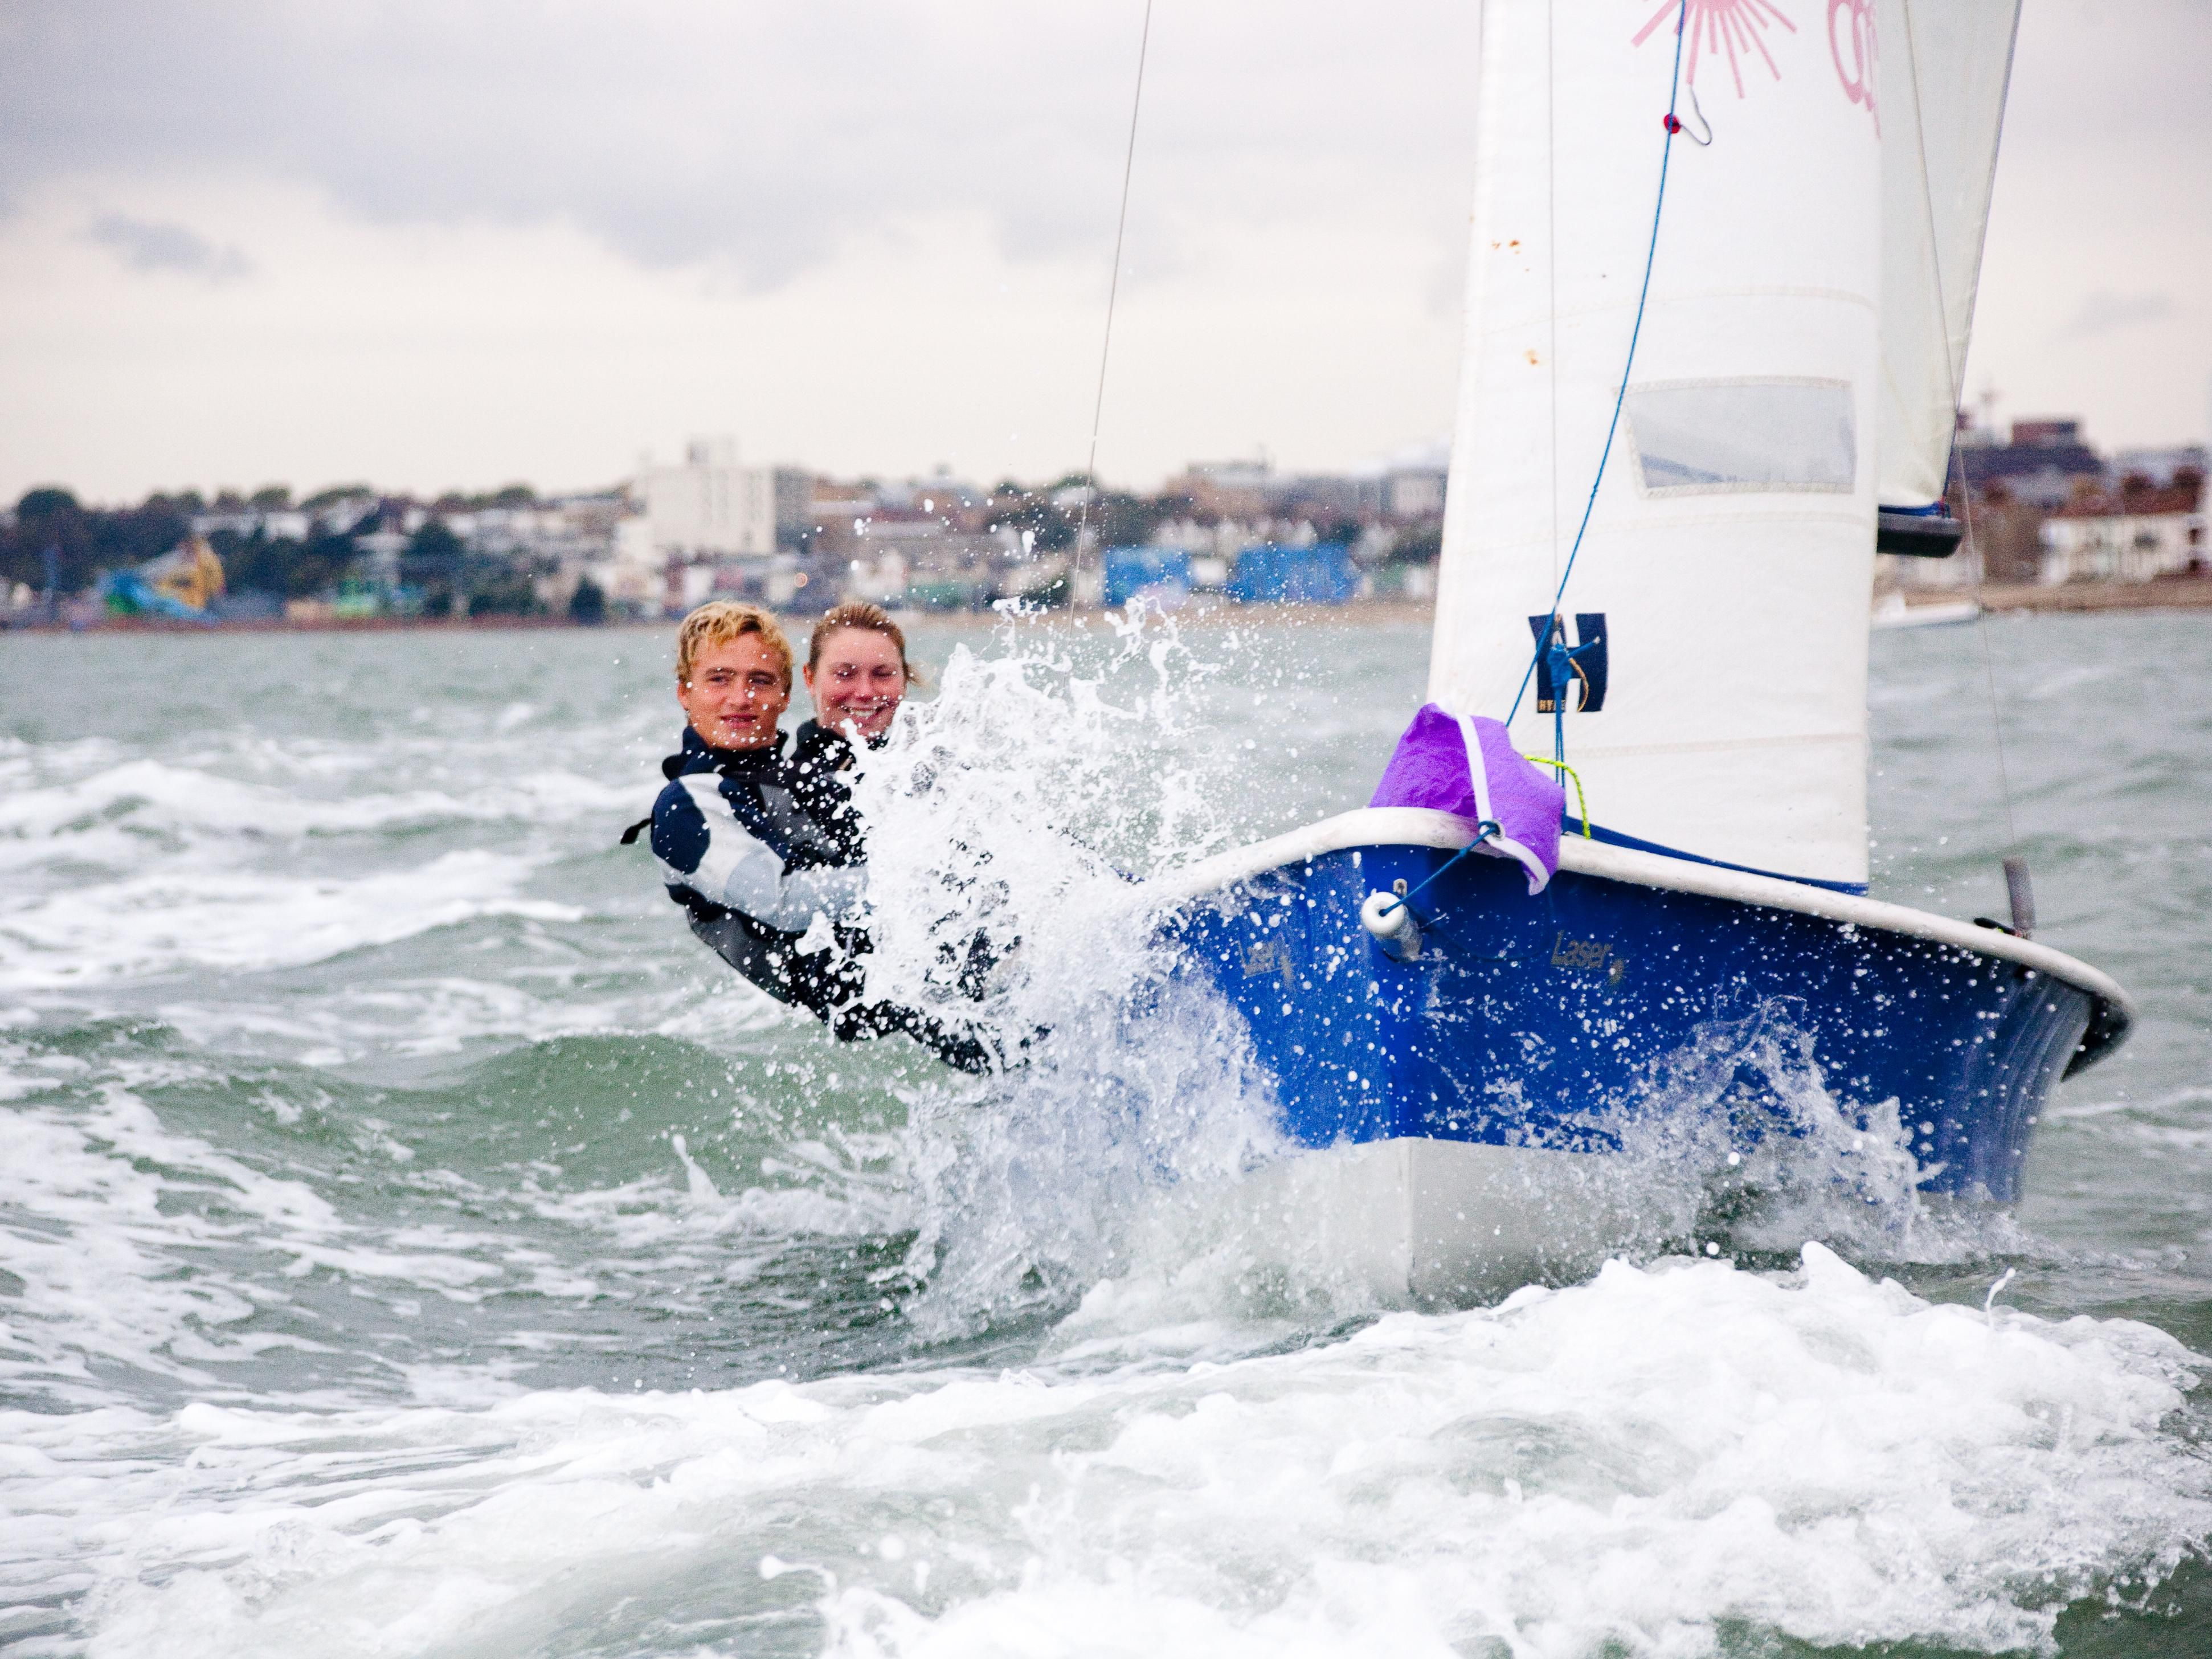 Southend offers a range of watersports